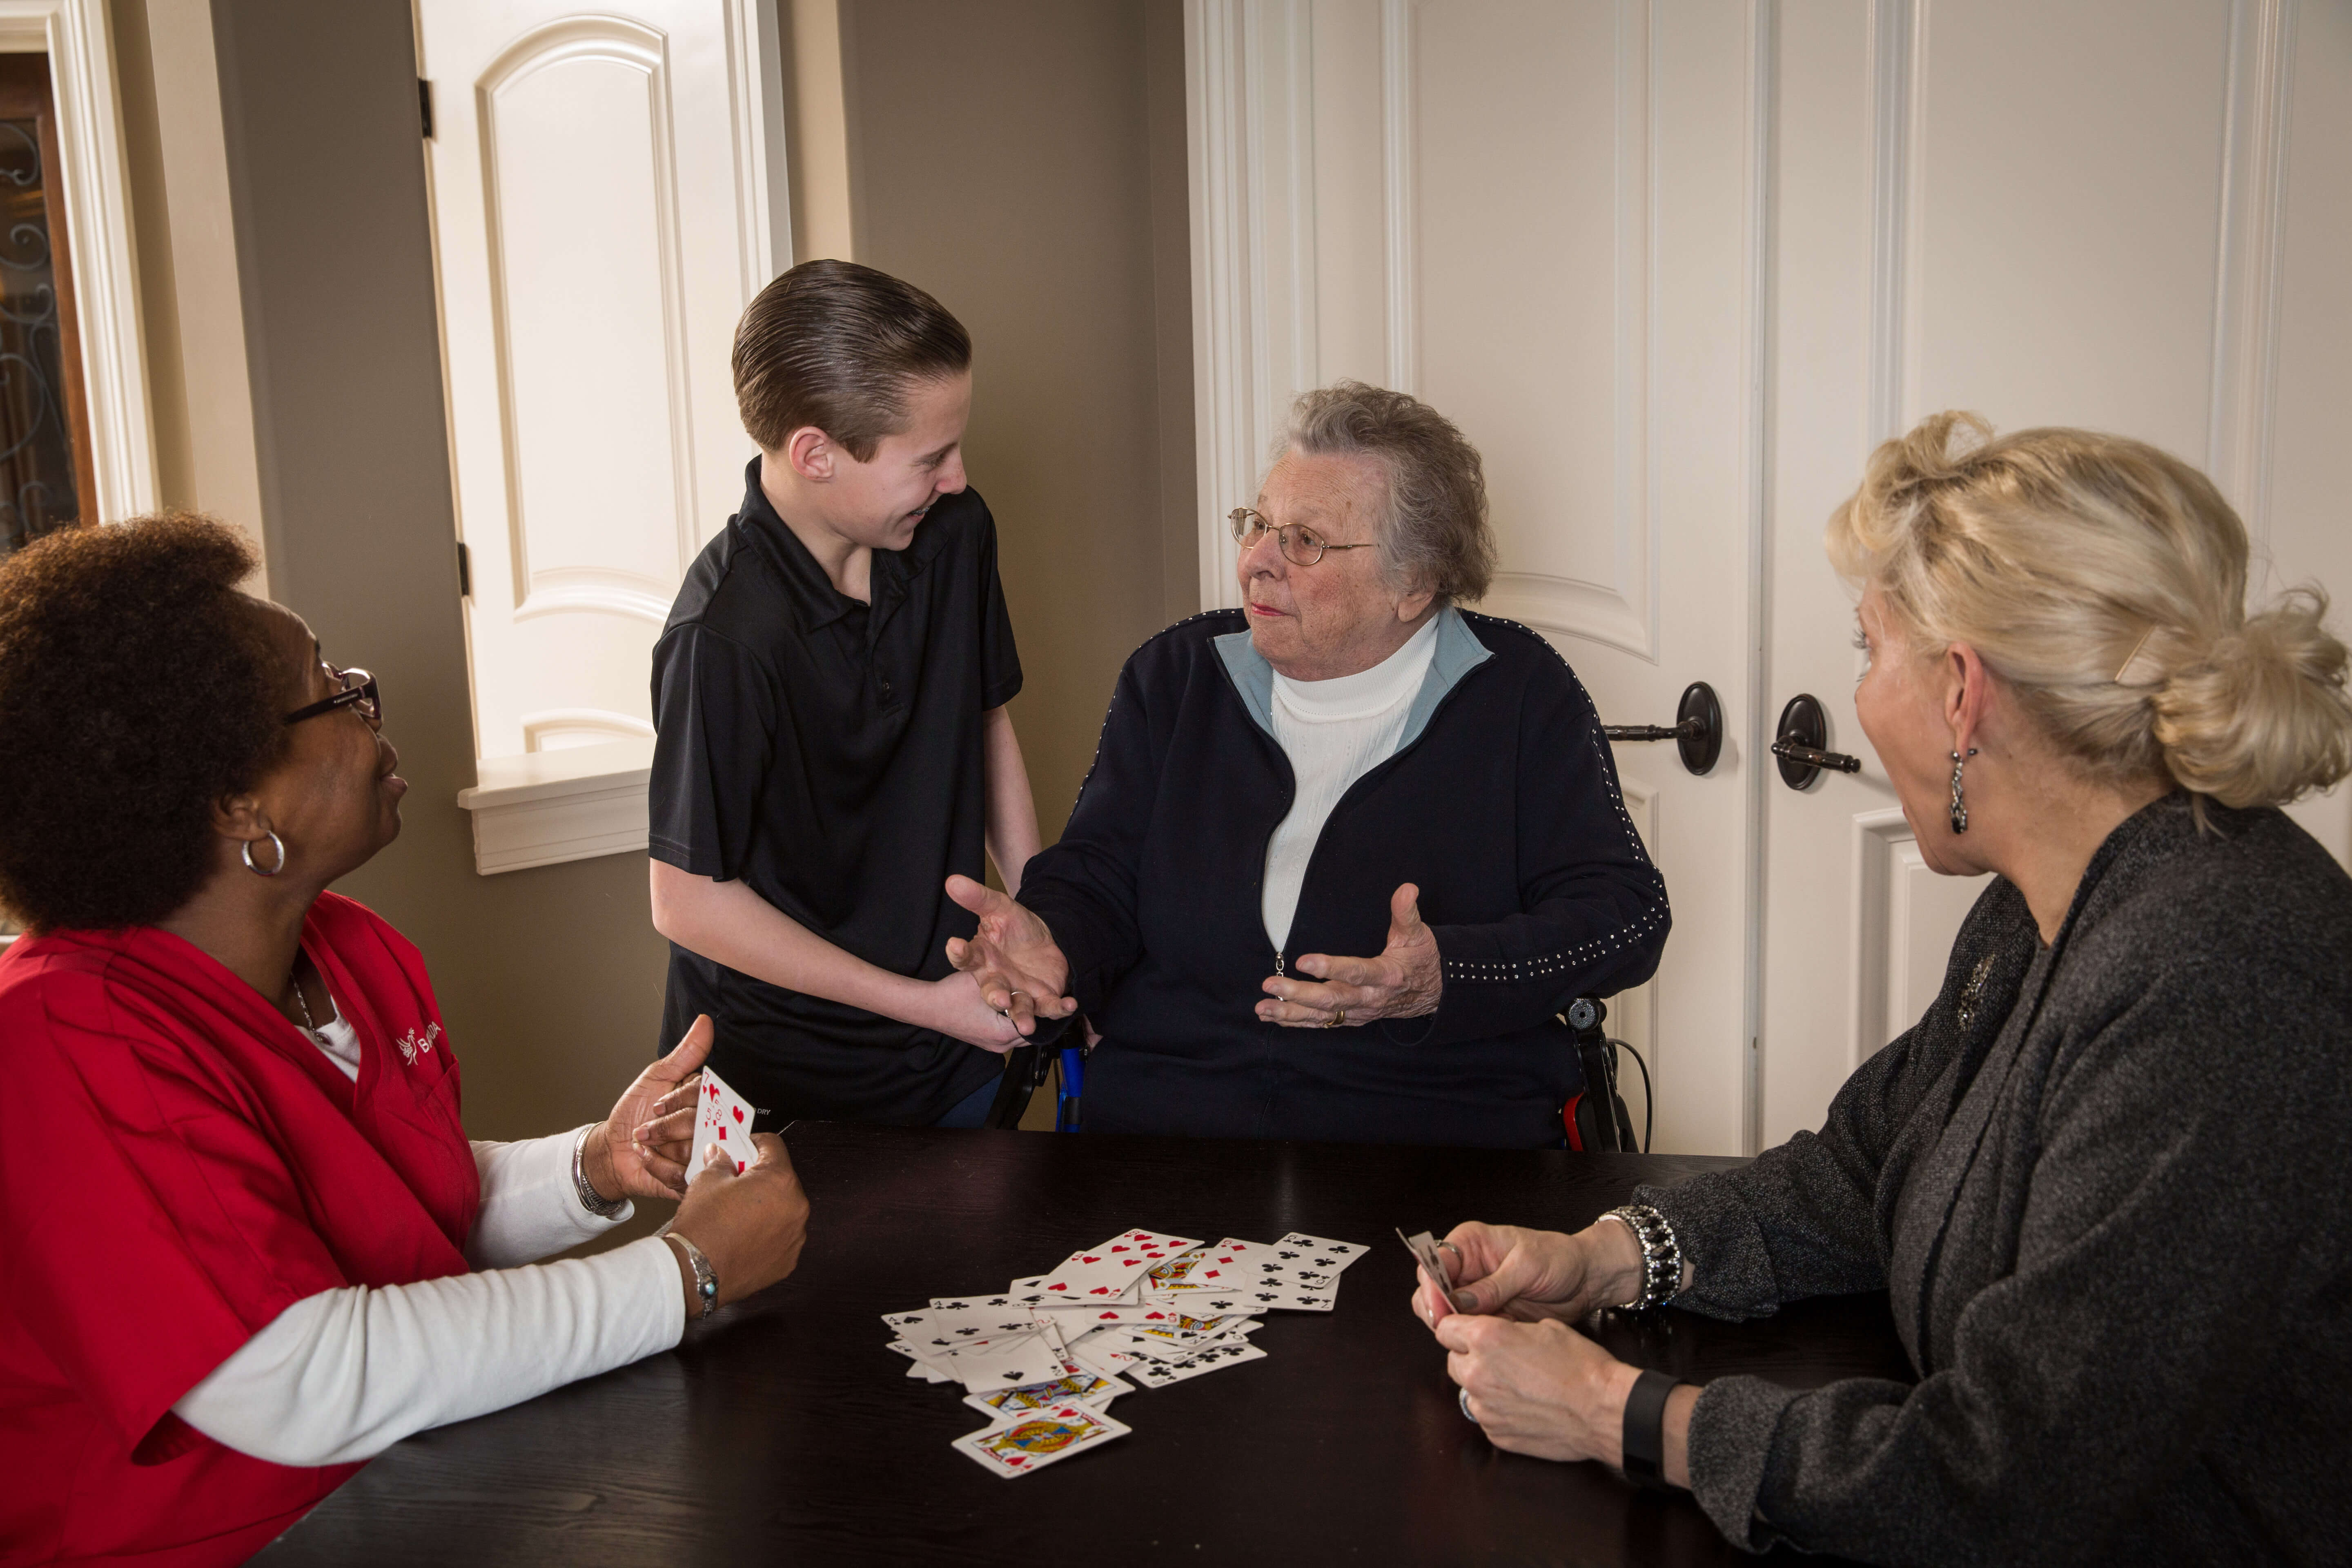 Aging parent, adult child, home health aide, and grandson playing cards